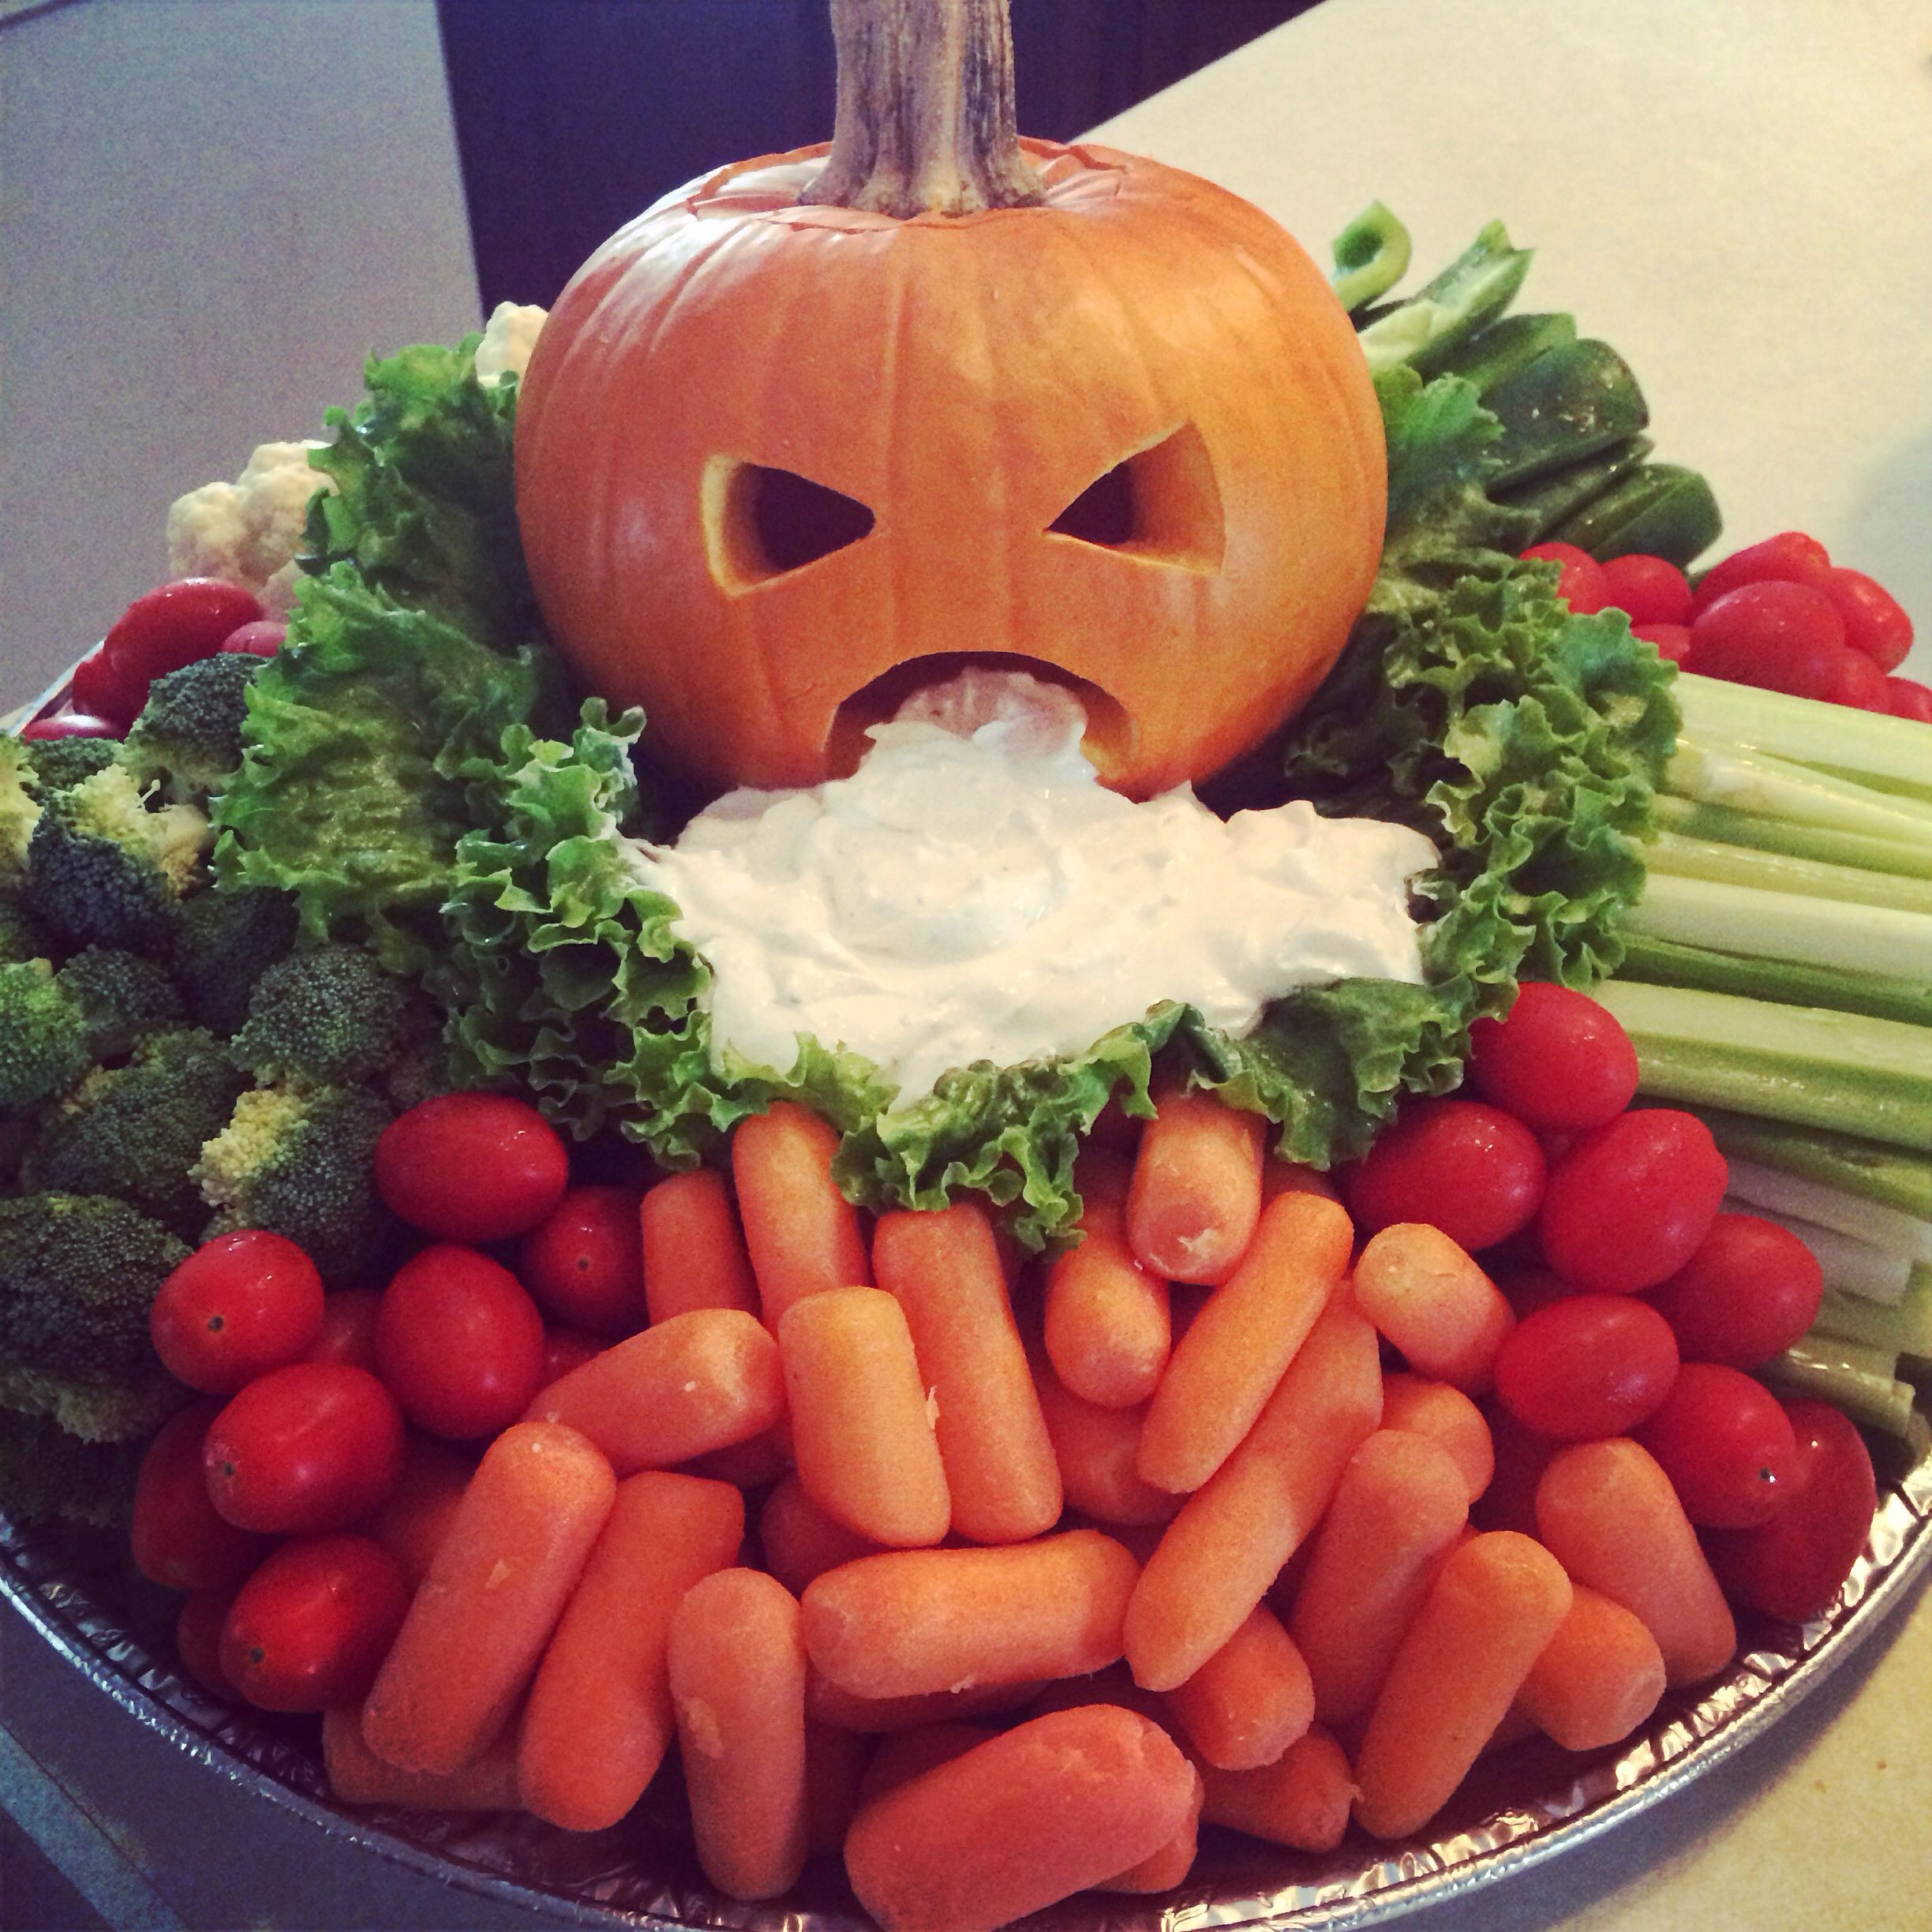 My Puking Pumpkin Veggie Tray ready for our tailgate tonight